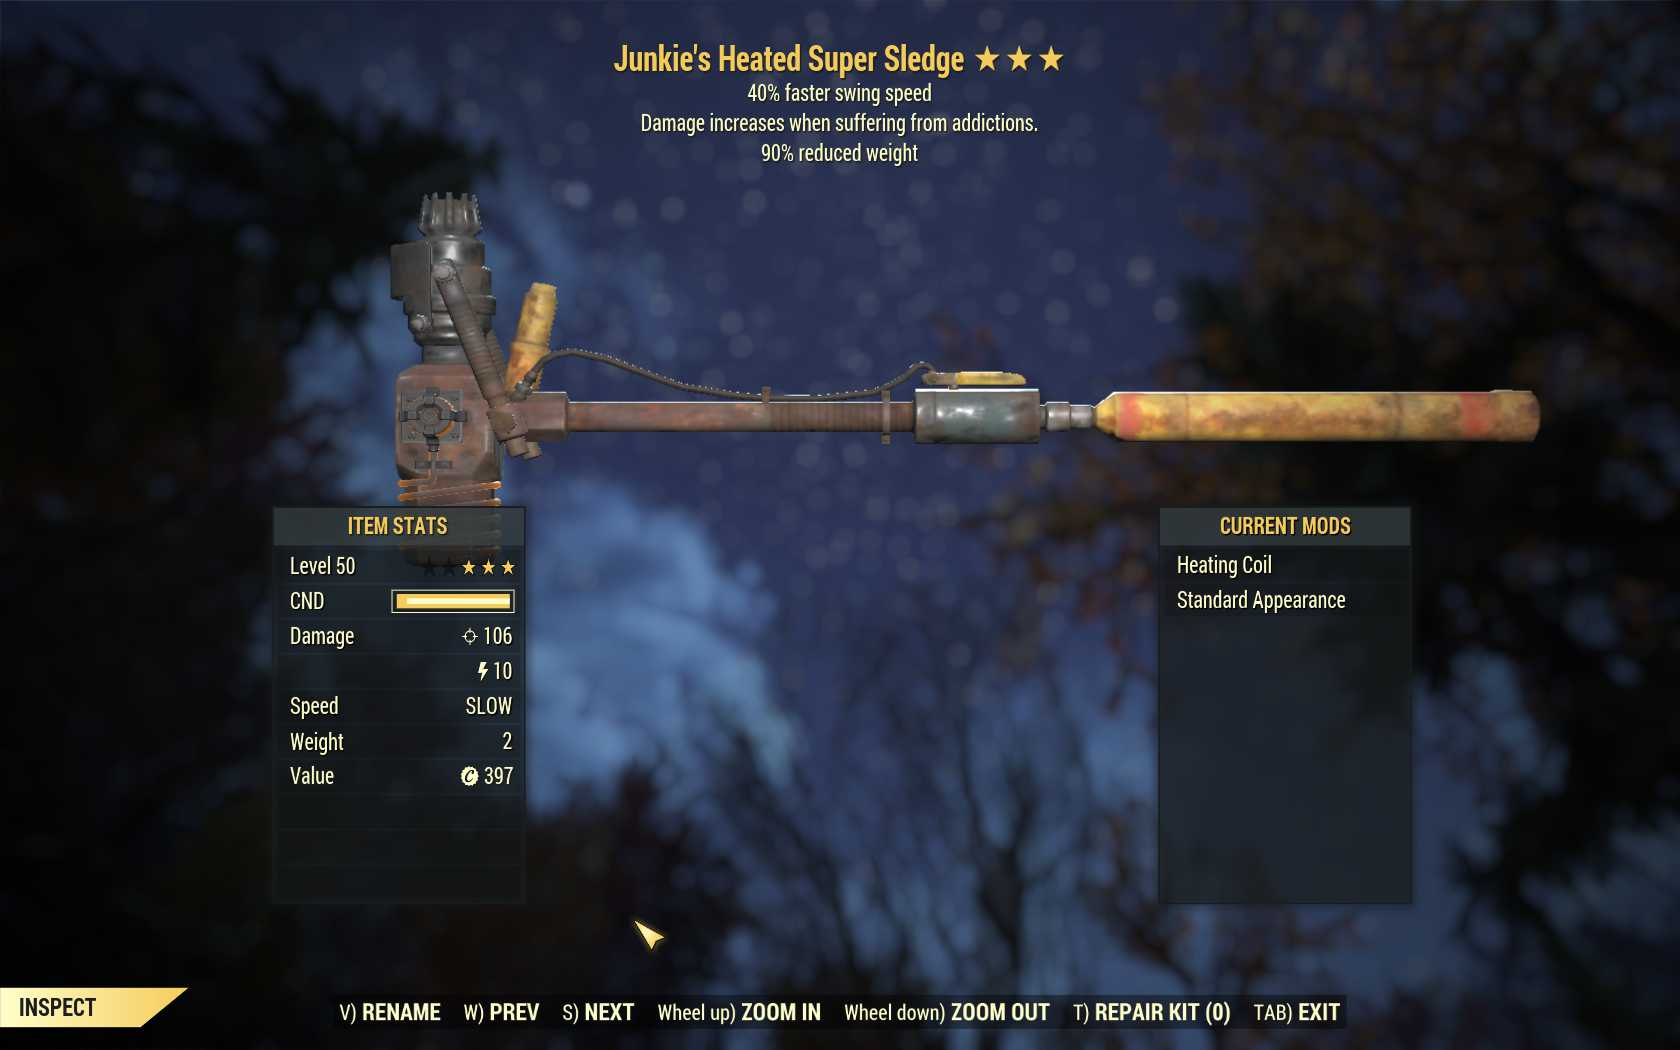 Junkie's Super Sledge (40% Faster Swing Speed, 90% reduced weight)